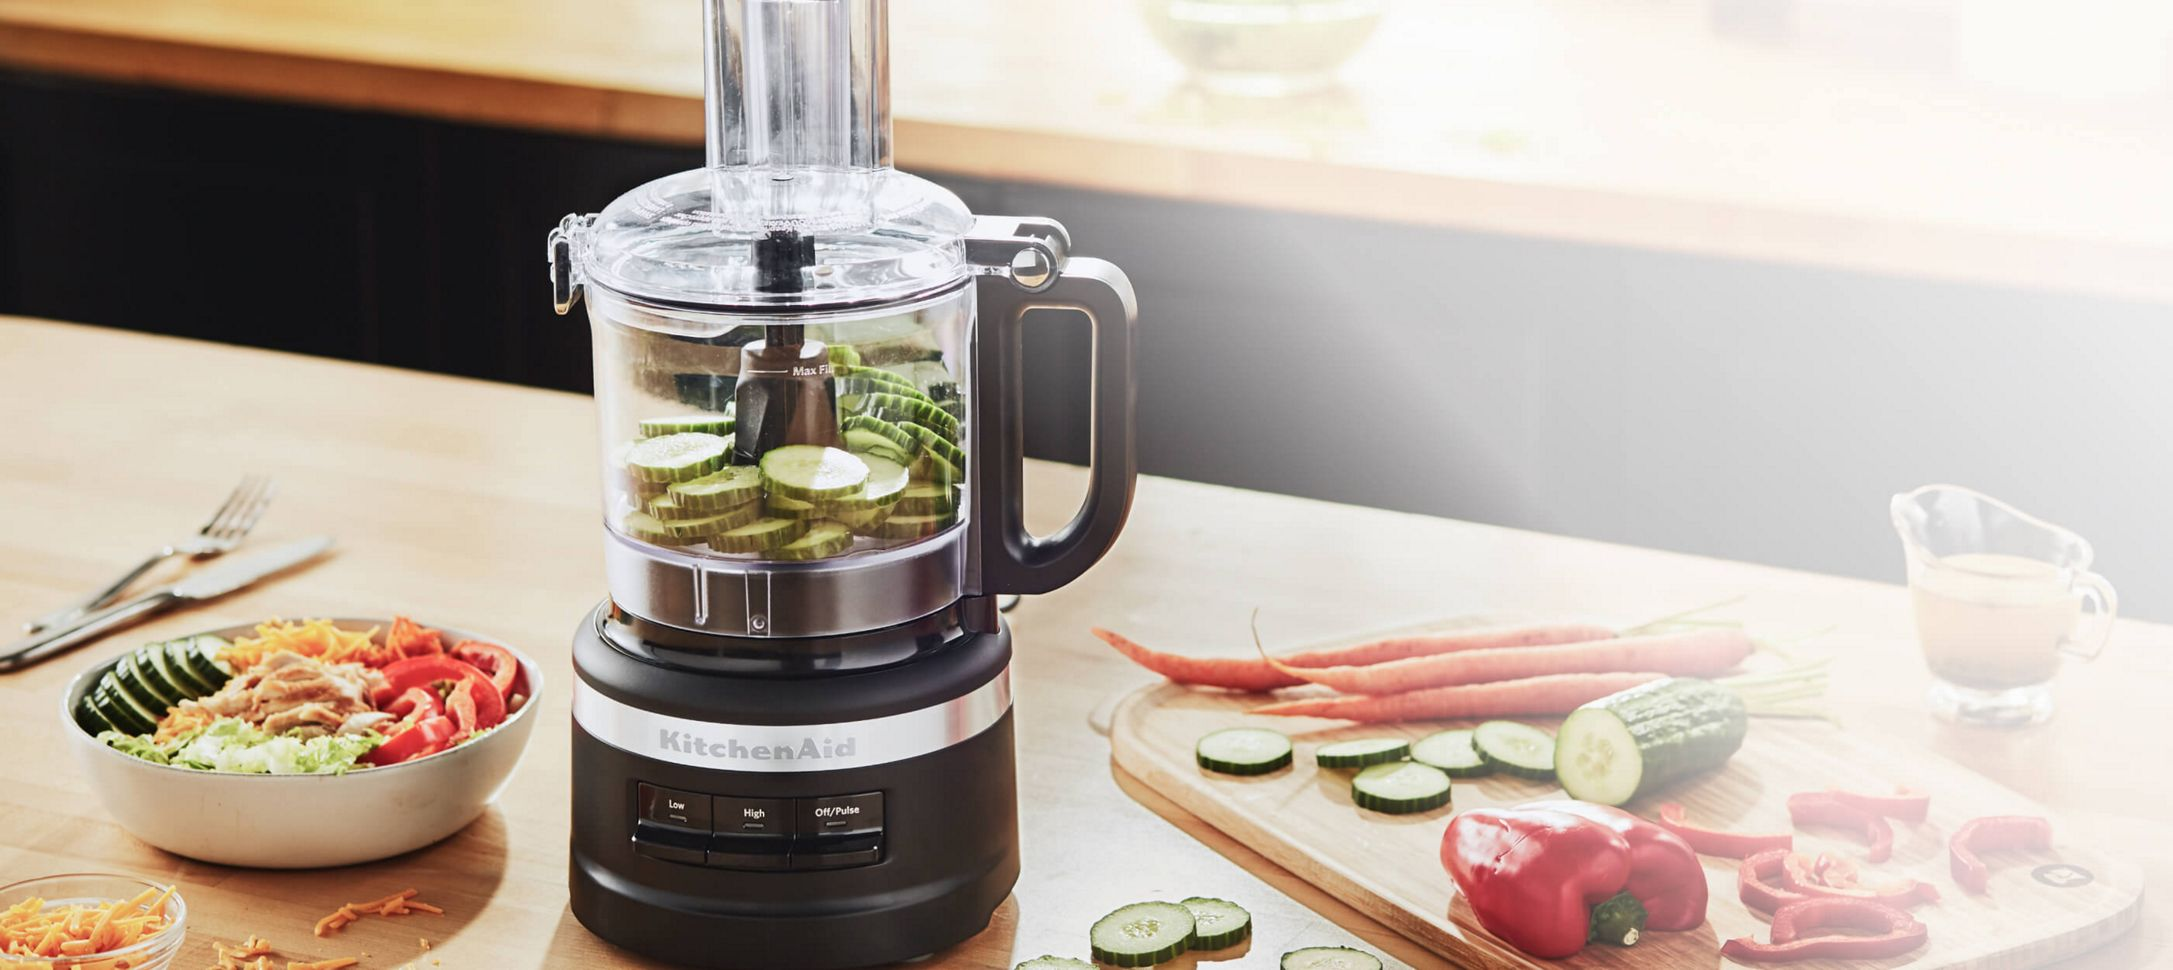 A Black 7 Cup Food Processor filled with sliced cucumbers.